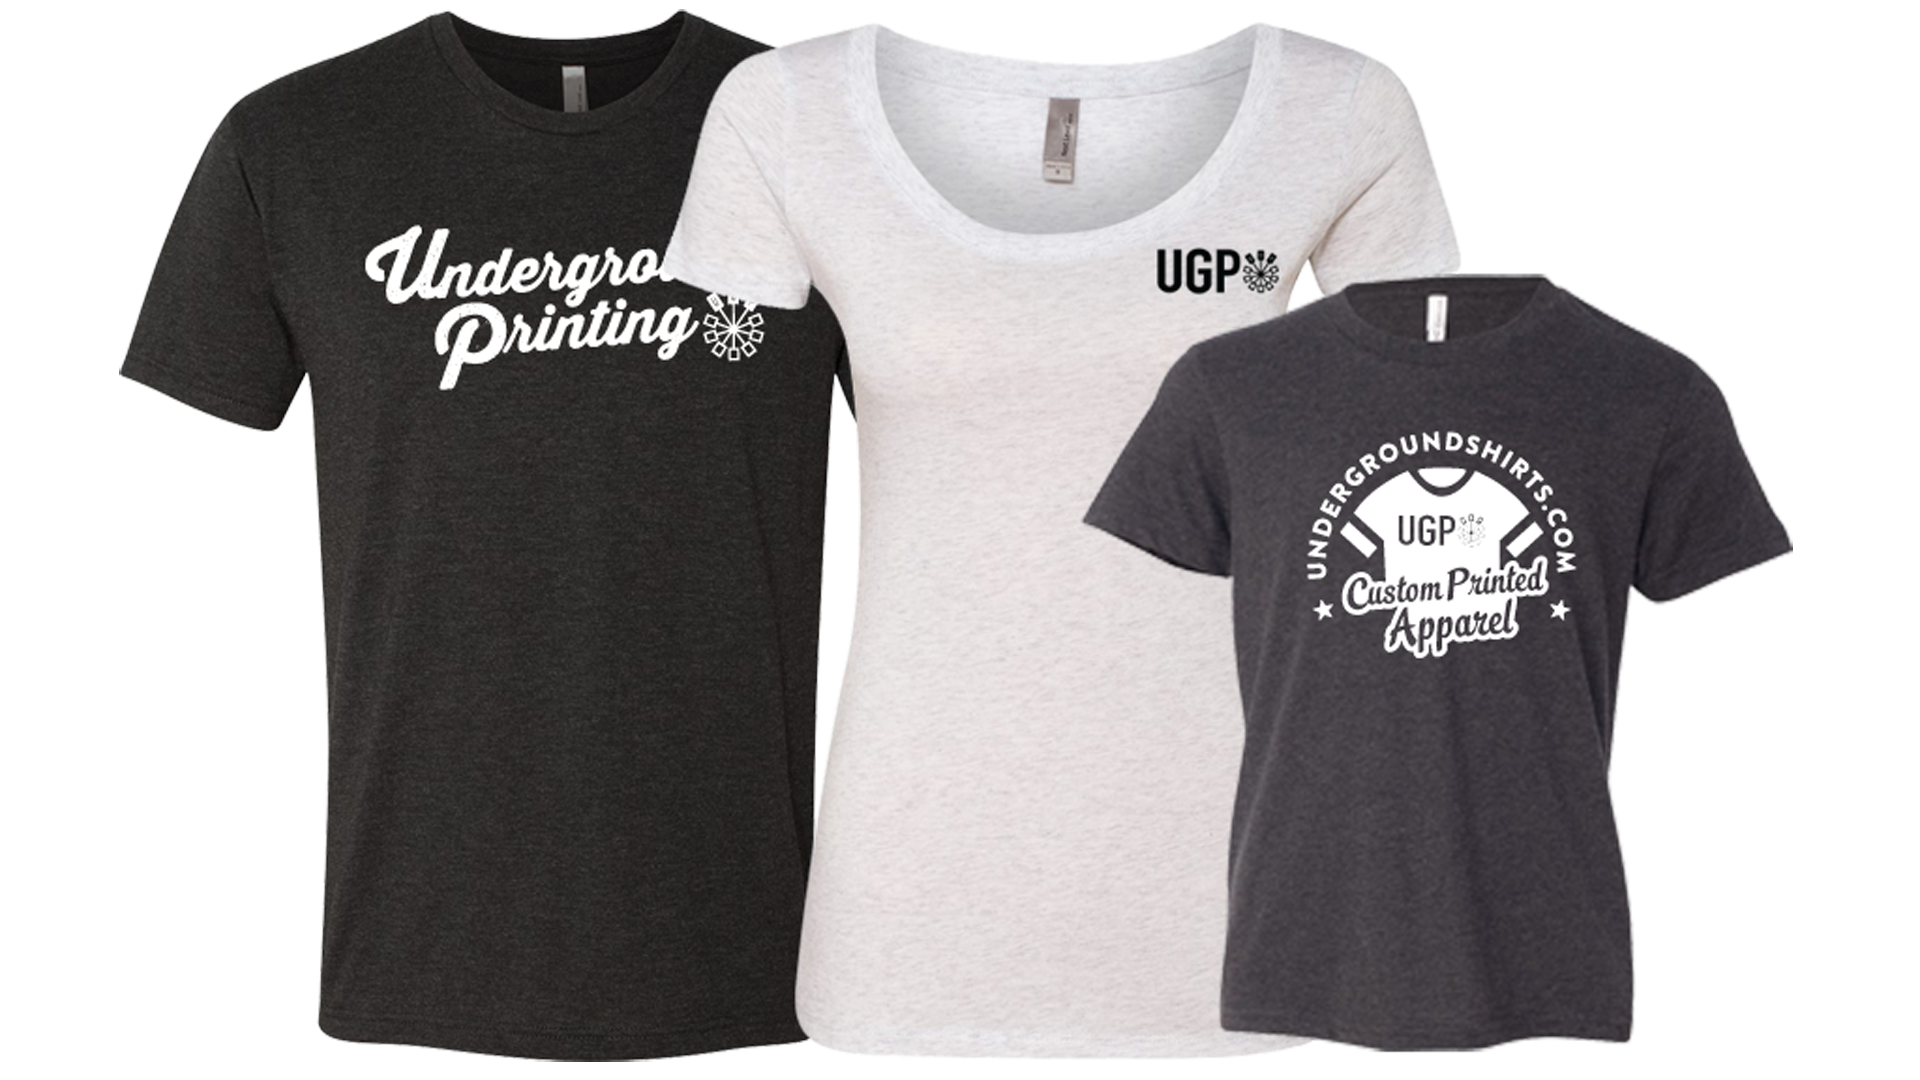 607886a1 Custom T-Shirt Printing in Indianapolis, IN | 719 Virginia Ave.